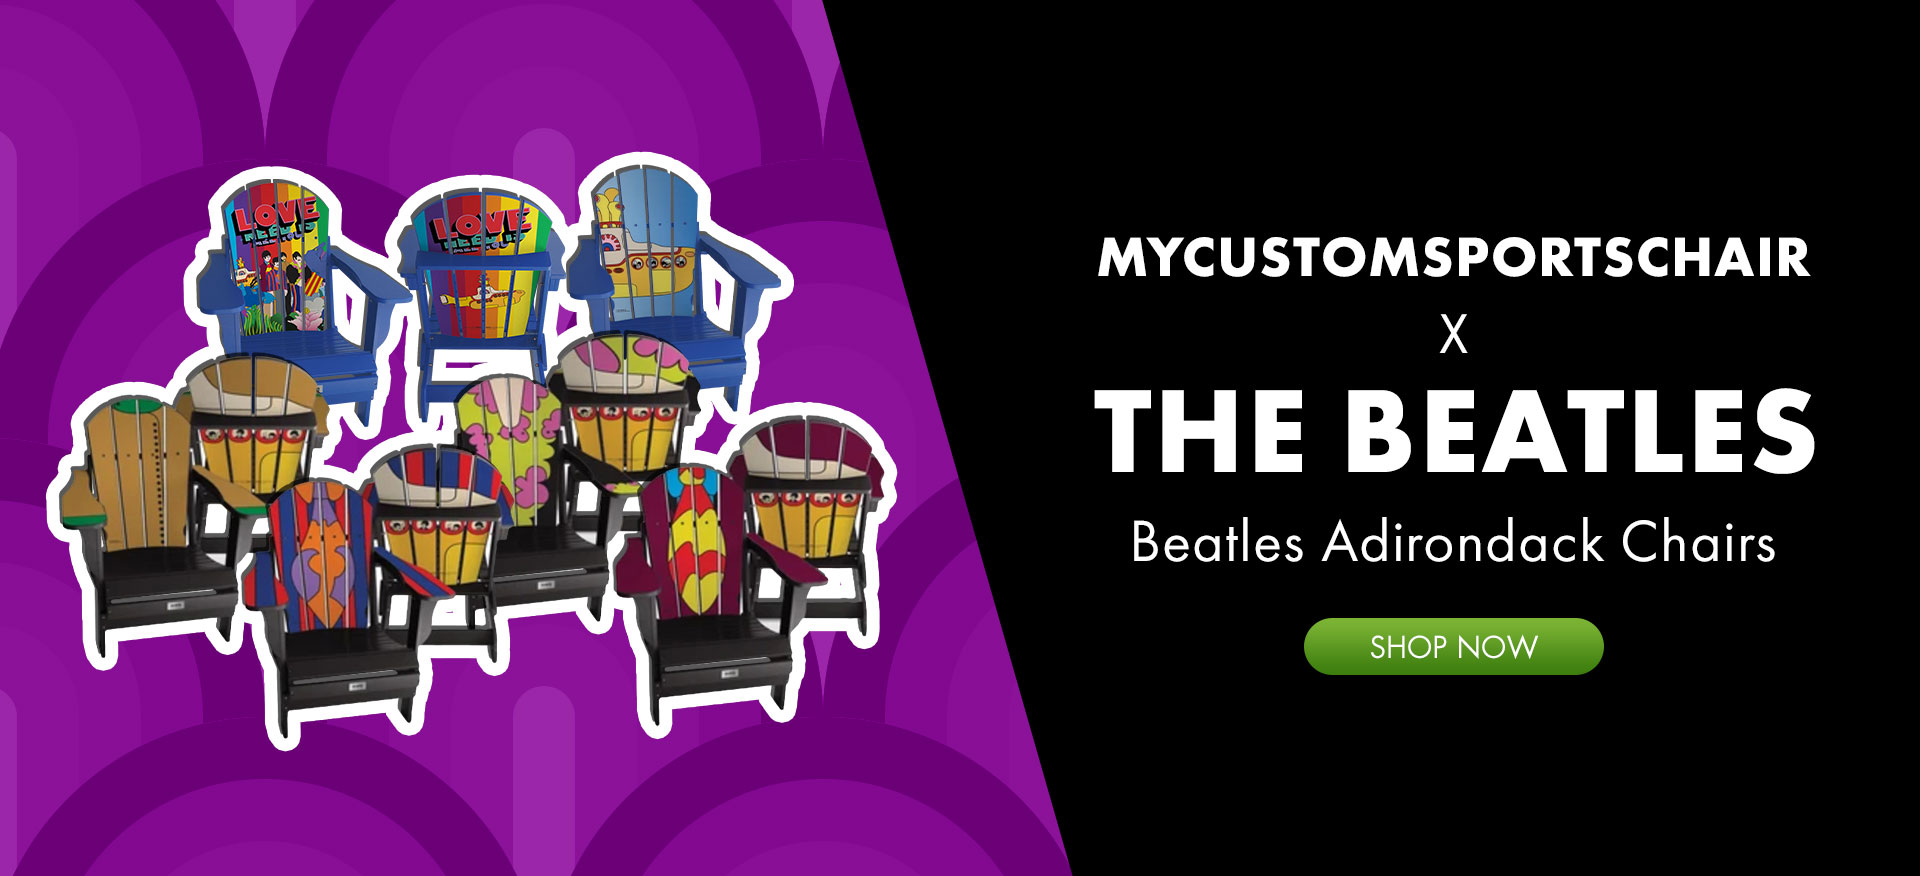 Shop Beatles Adirondack Chairs!